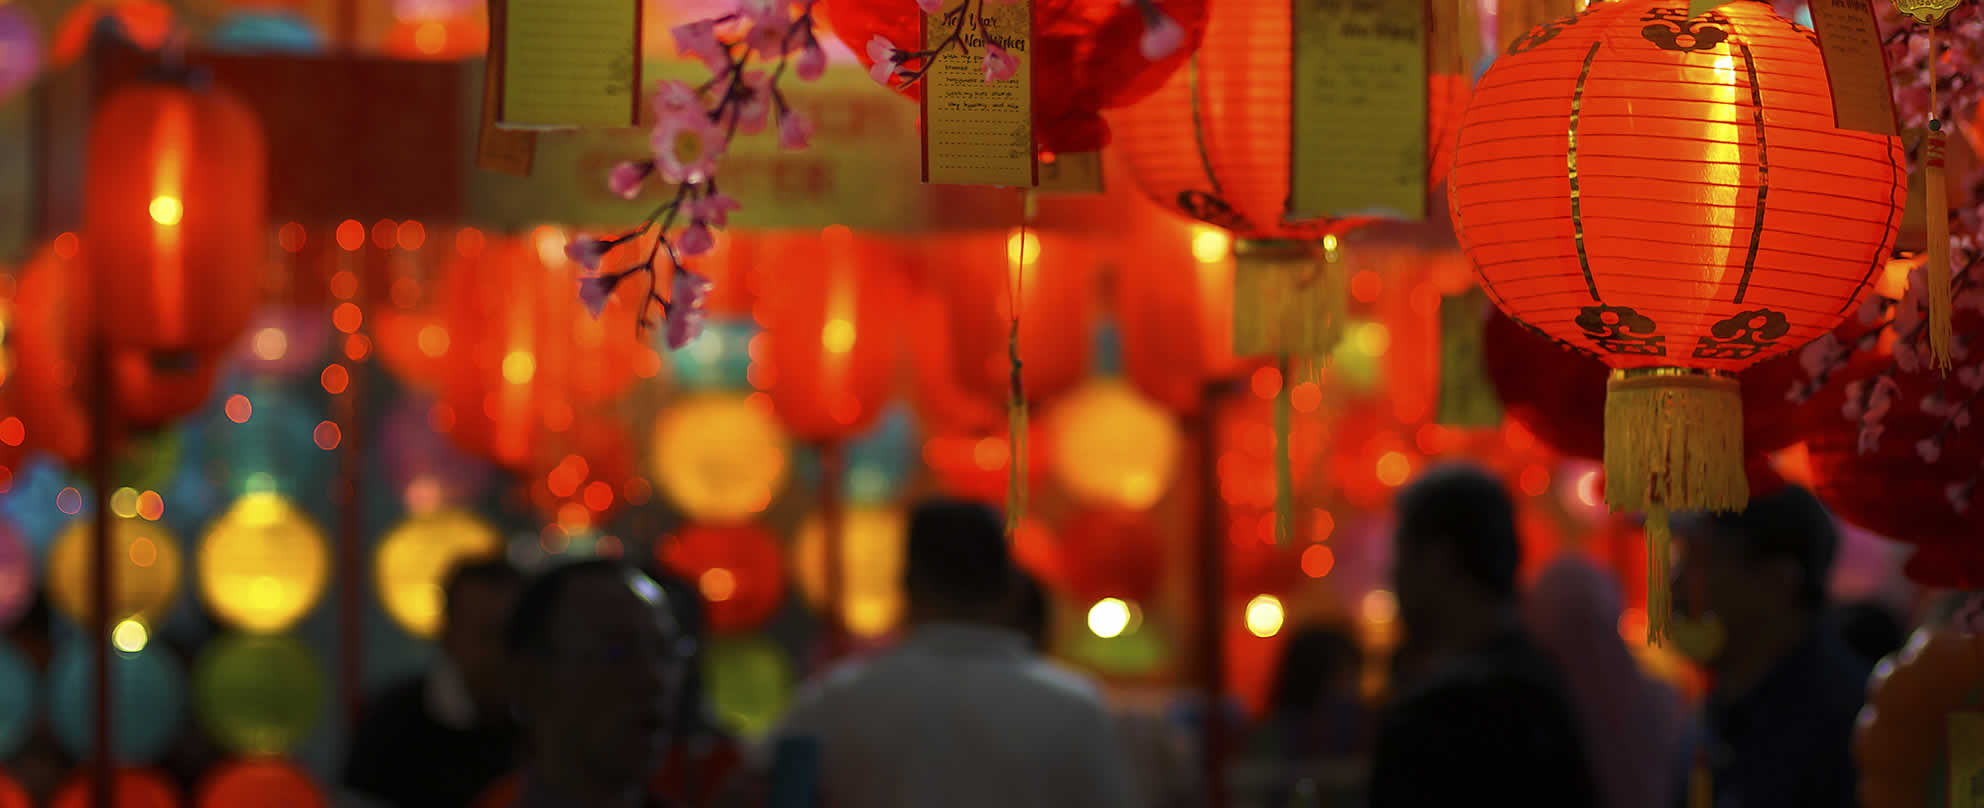 Chinese New Year celebrations with people walking underneath  laterns, flower blossoms, coloured lights and good luck notes.